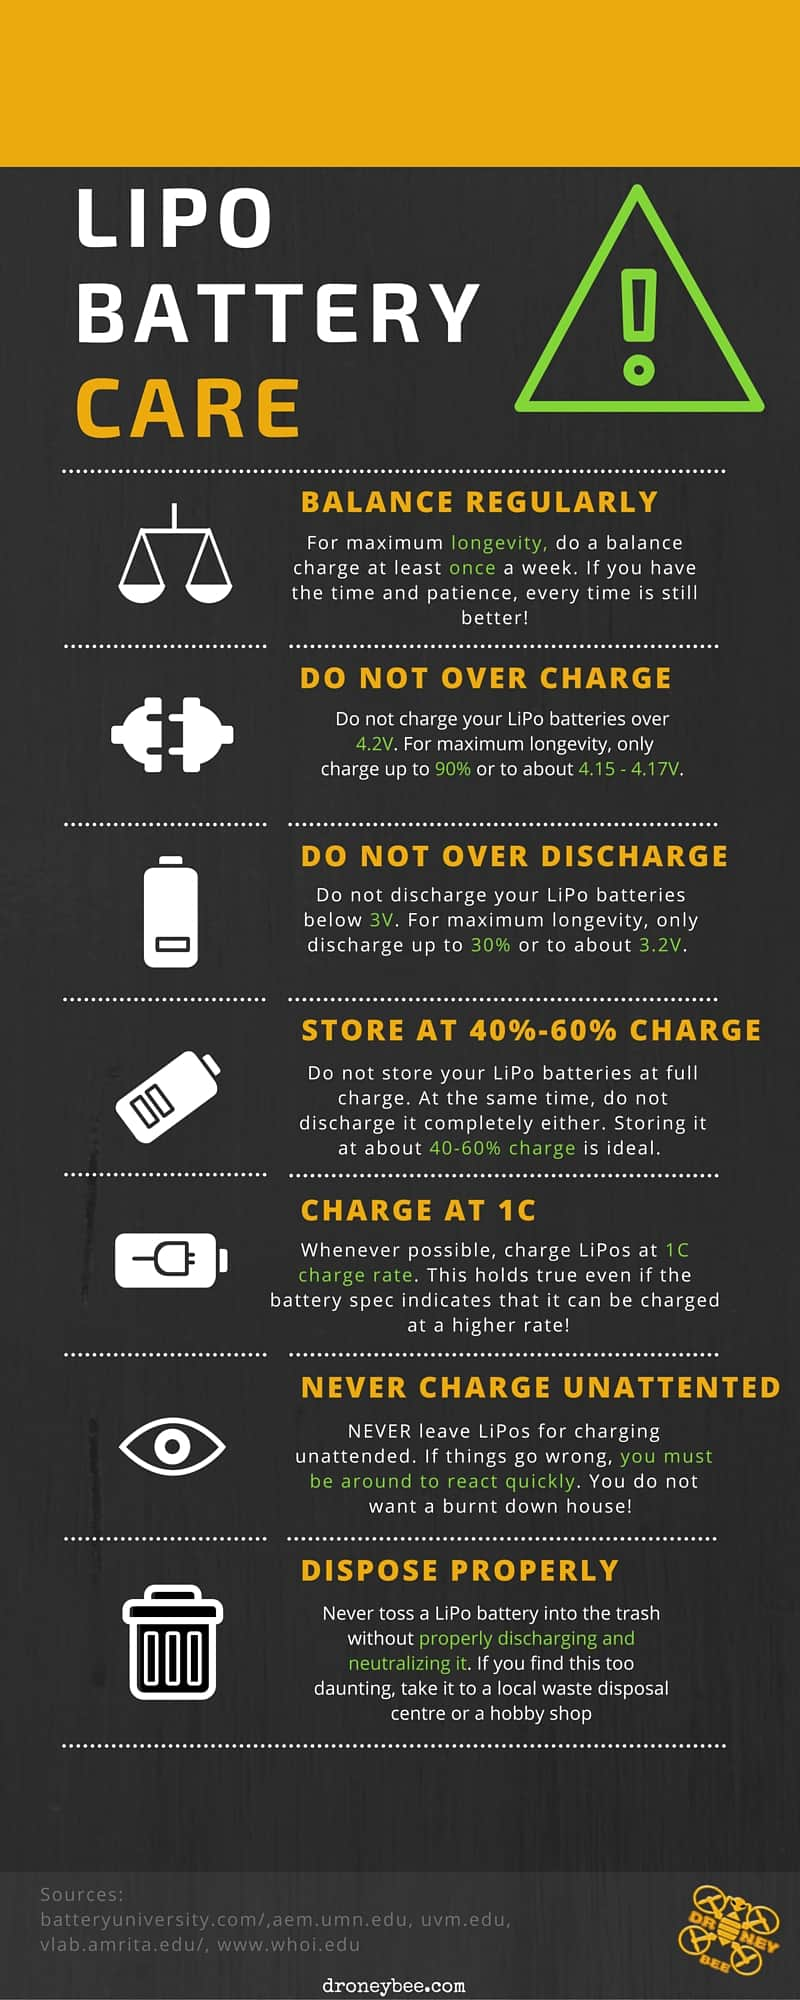 Lipo Battery Tutorial The Concise Beginner Guide Droney Bee Dual Super Cap Charging Circuit From 12v With Balance Voltage Care Infographic